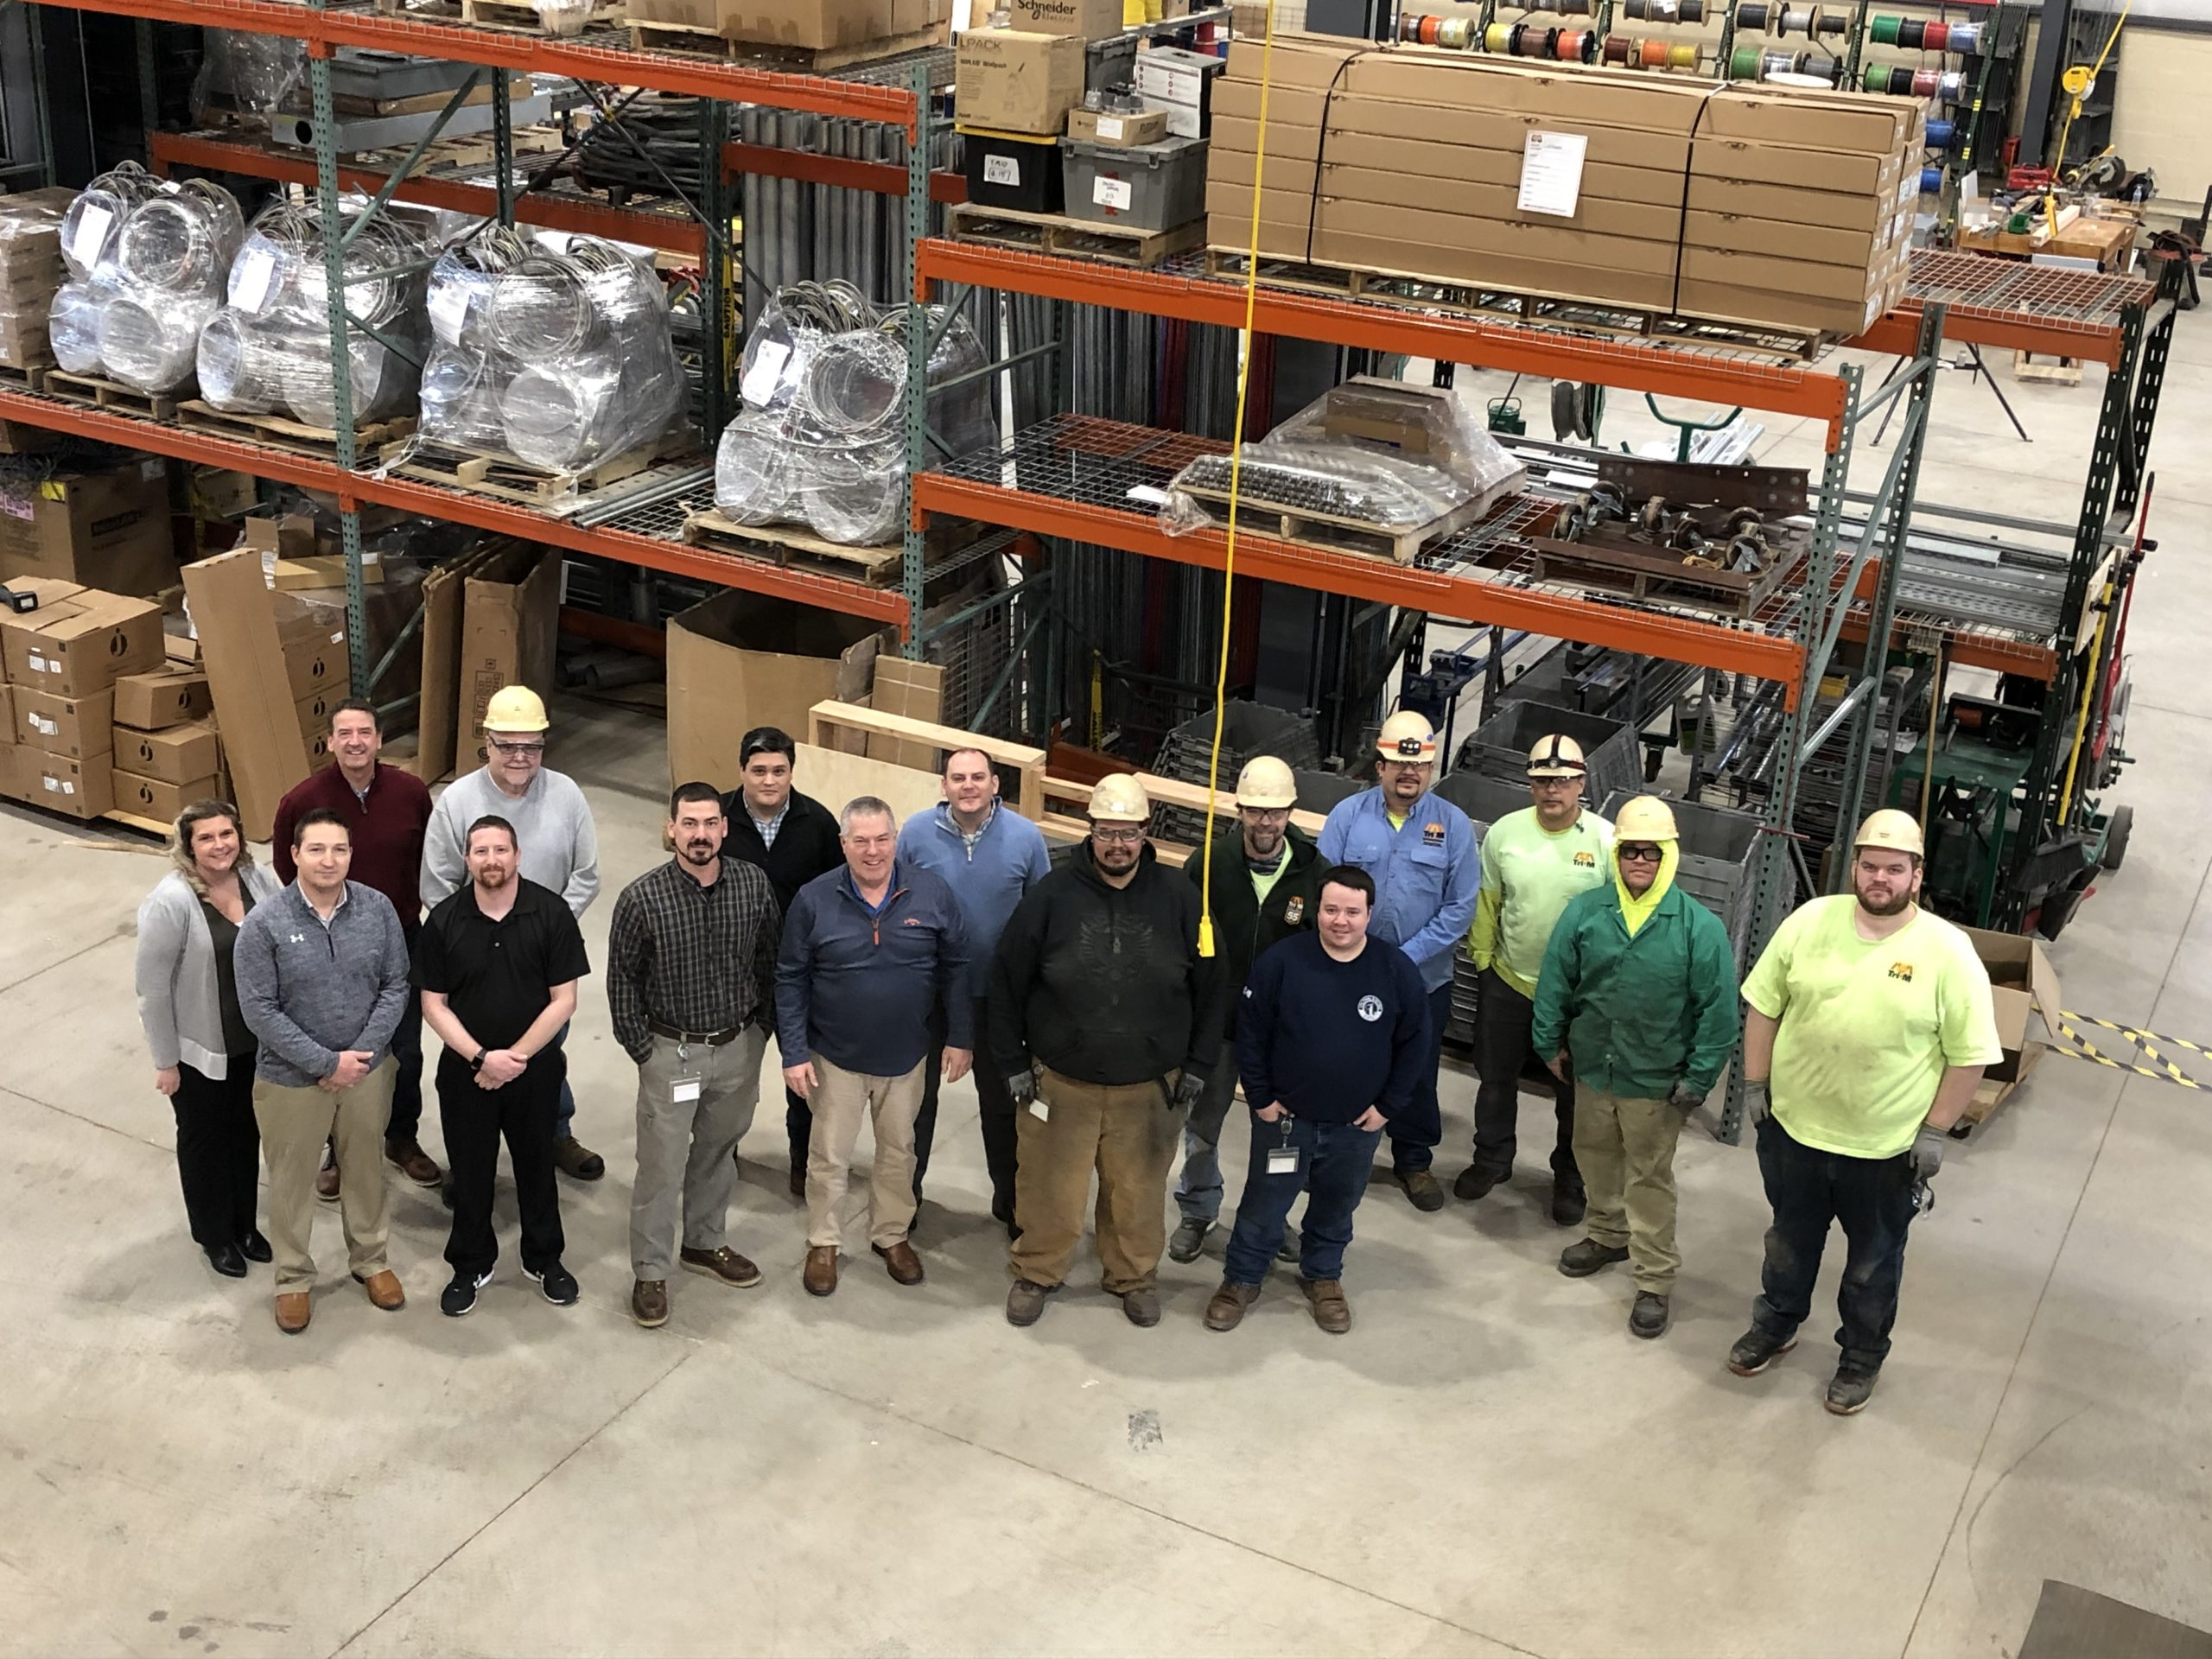 Tri-M Group's Prefab Services Wins Air Products Job